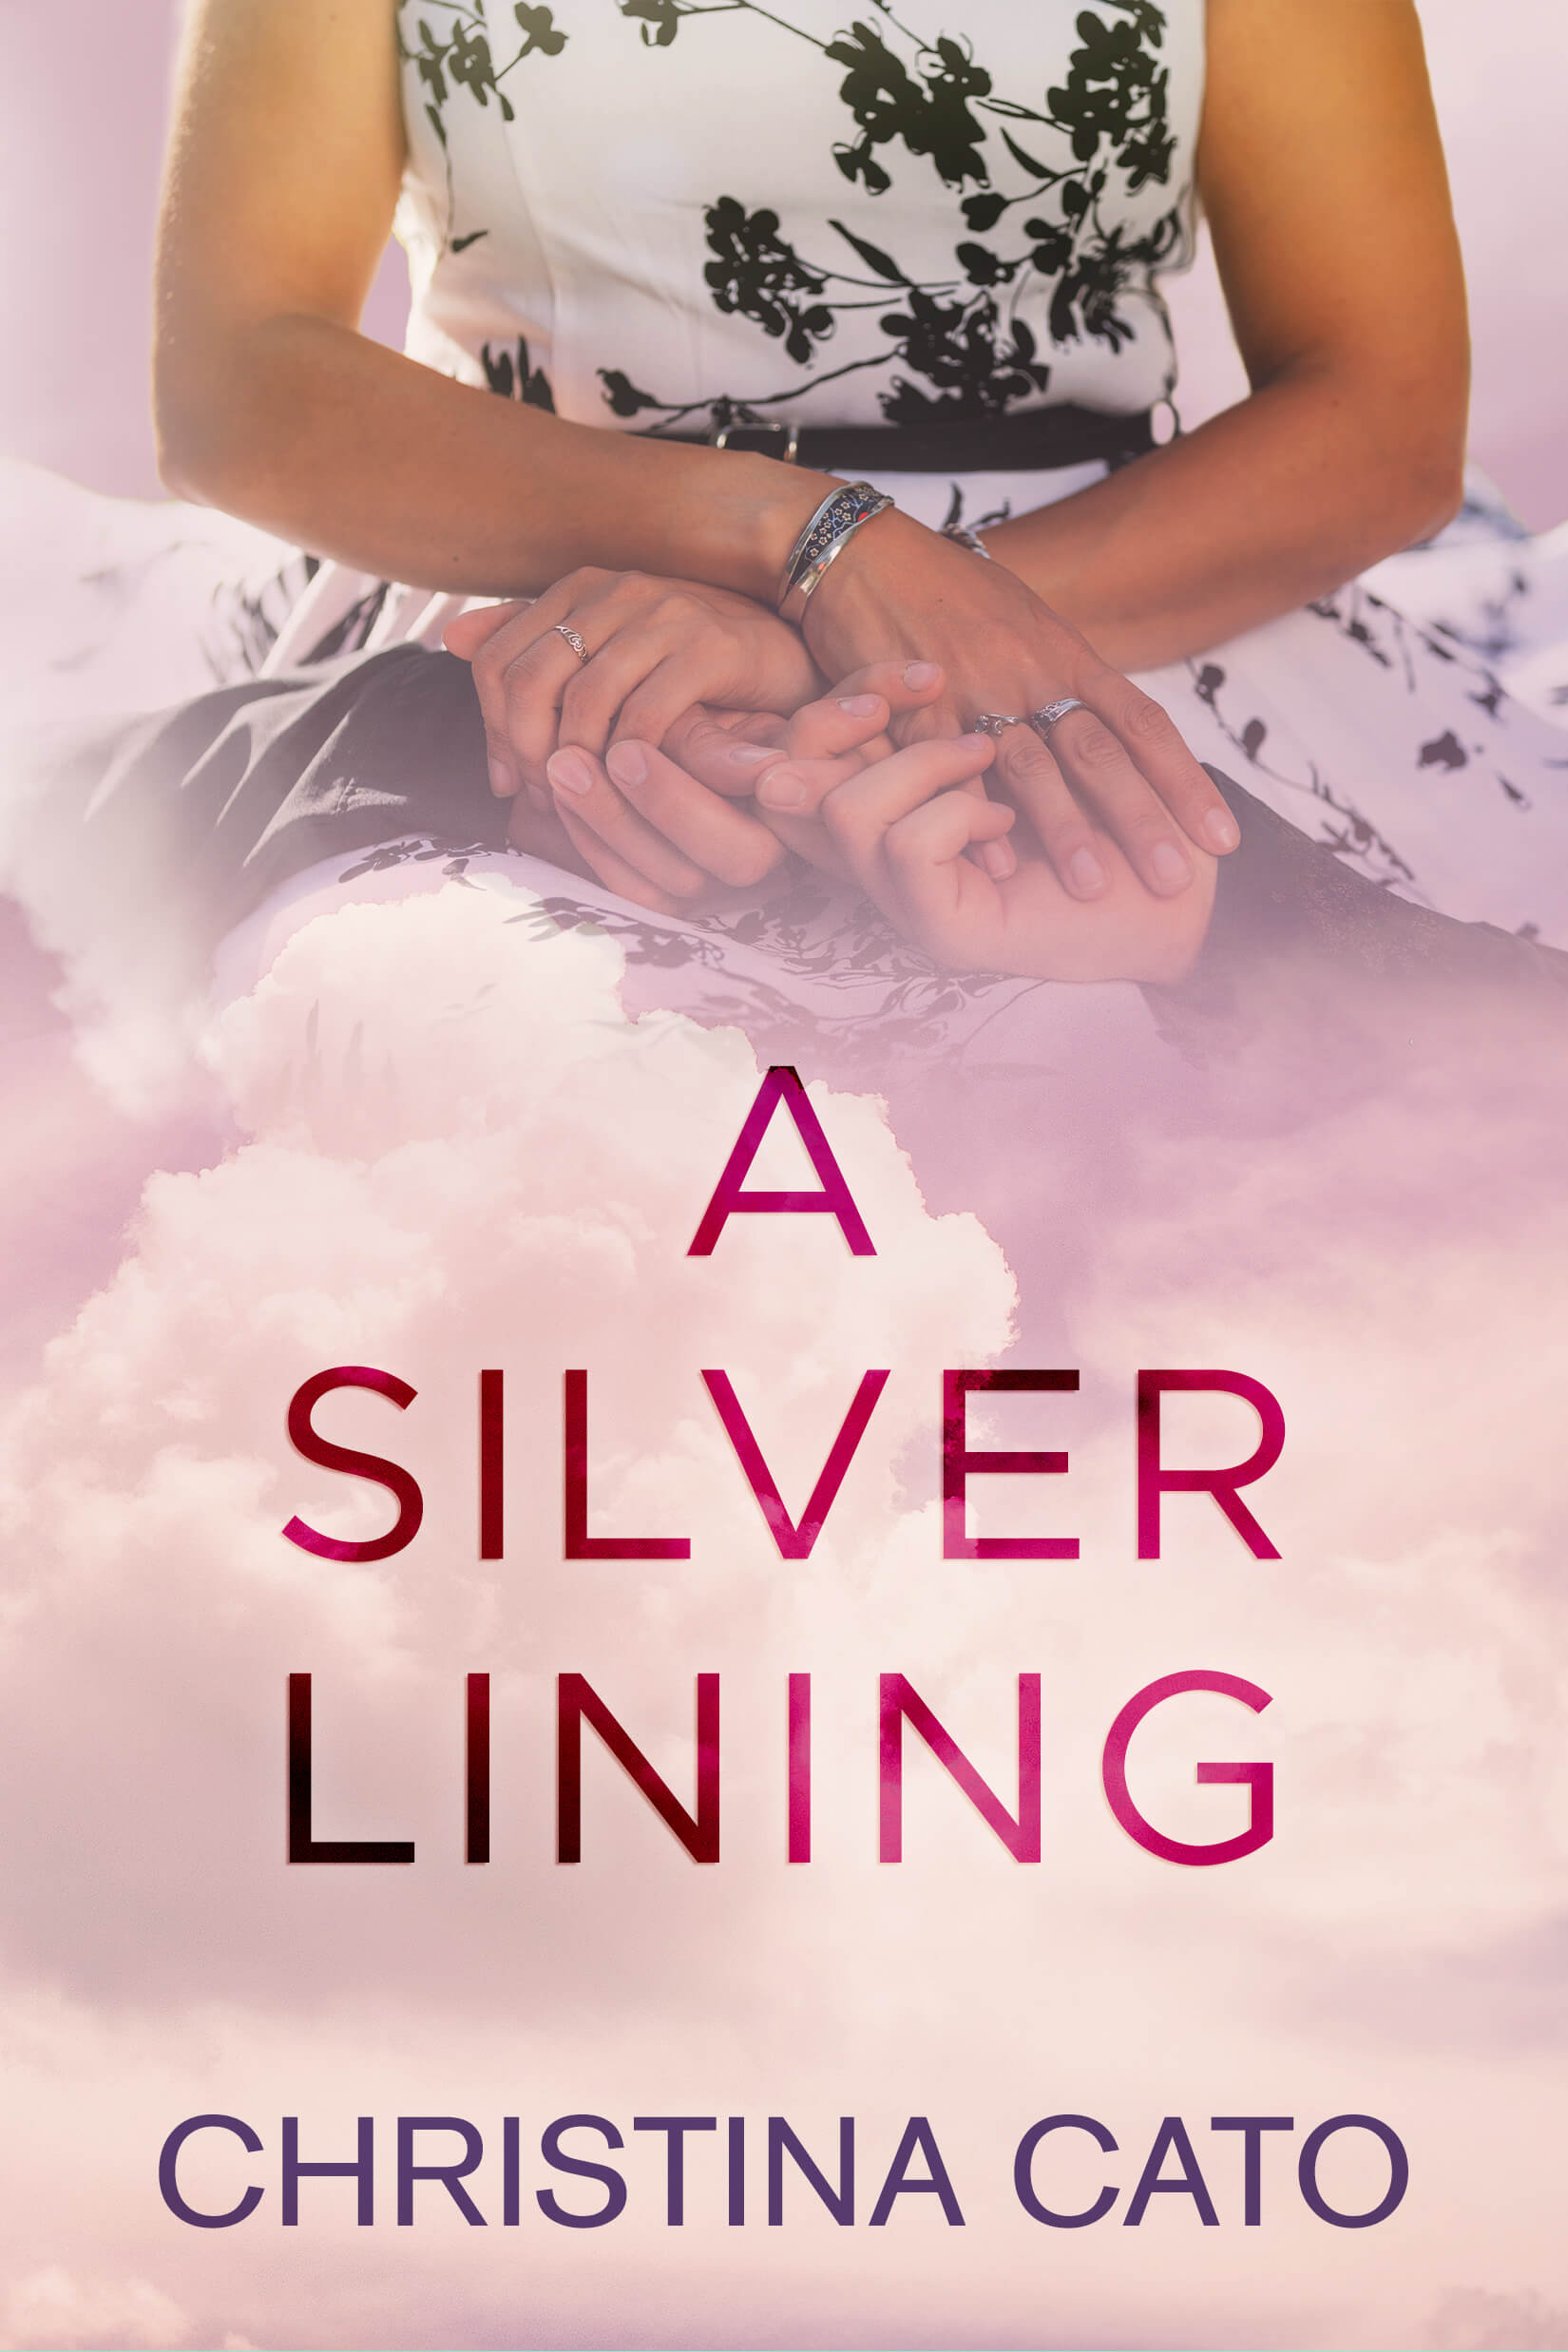 A Silver Lining - Christina Cato